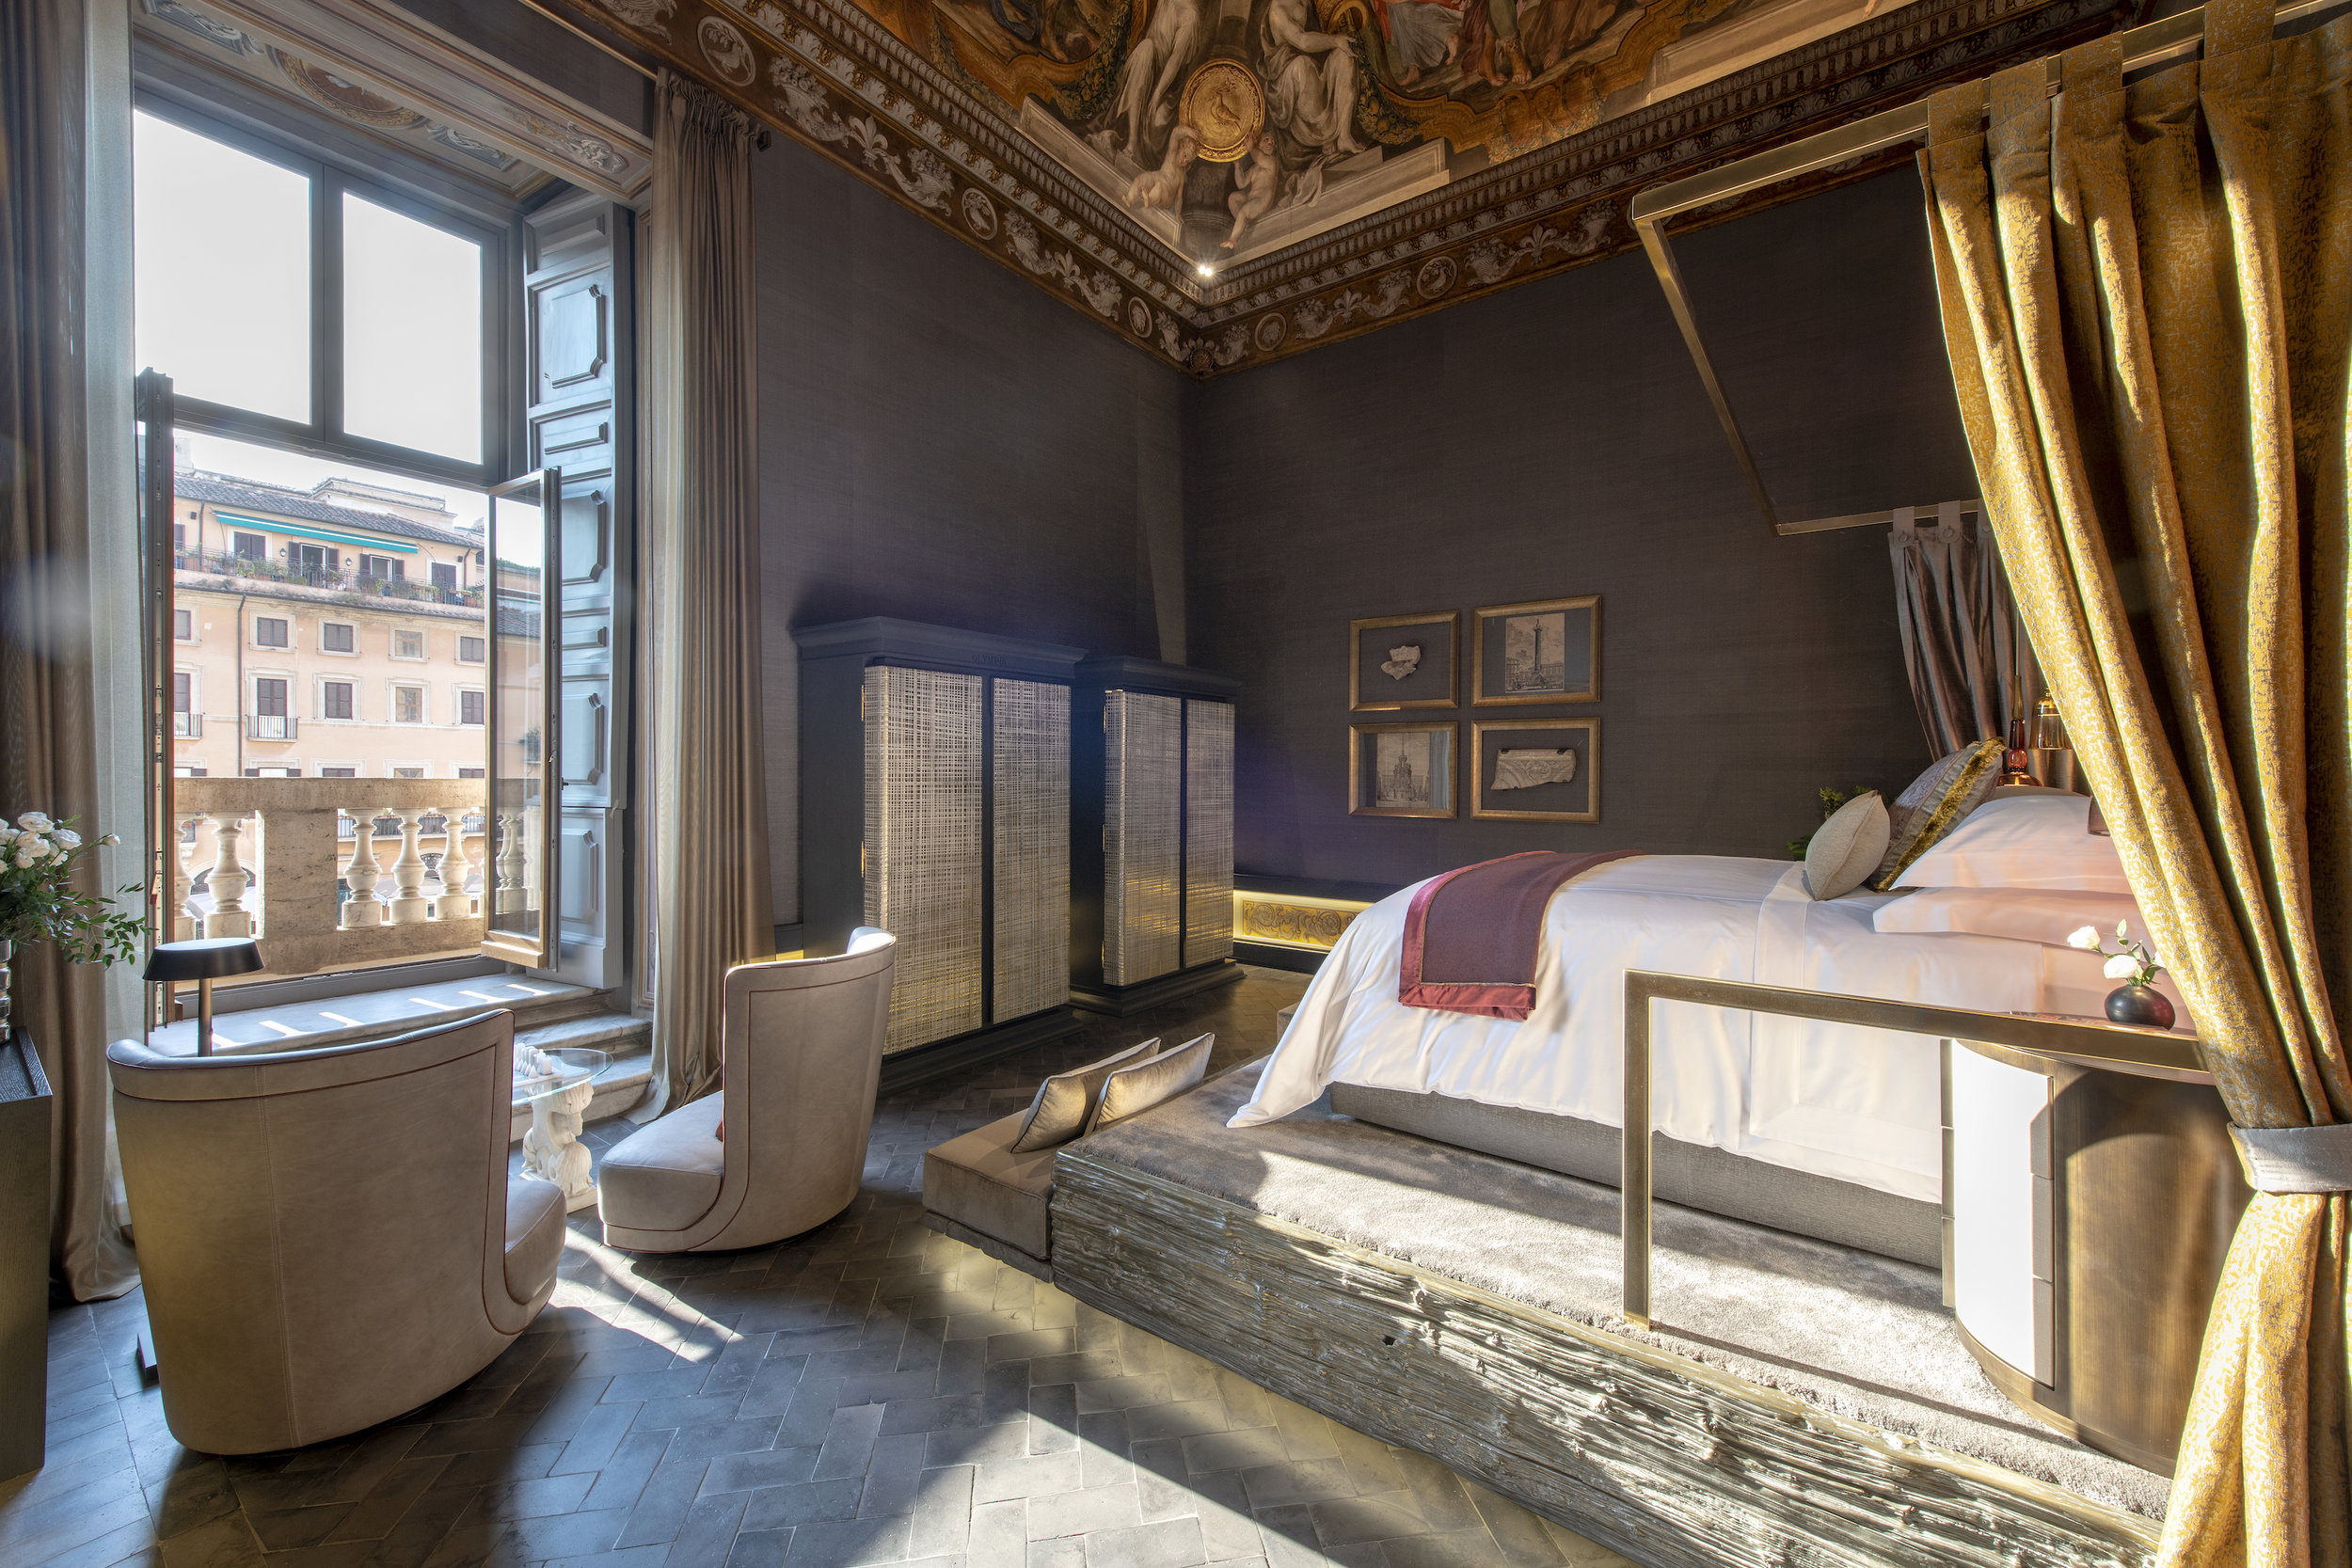 Few travelers have an opportunity to live history as a night in a Pope's bedroom.